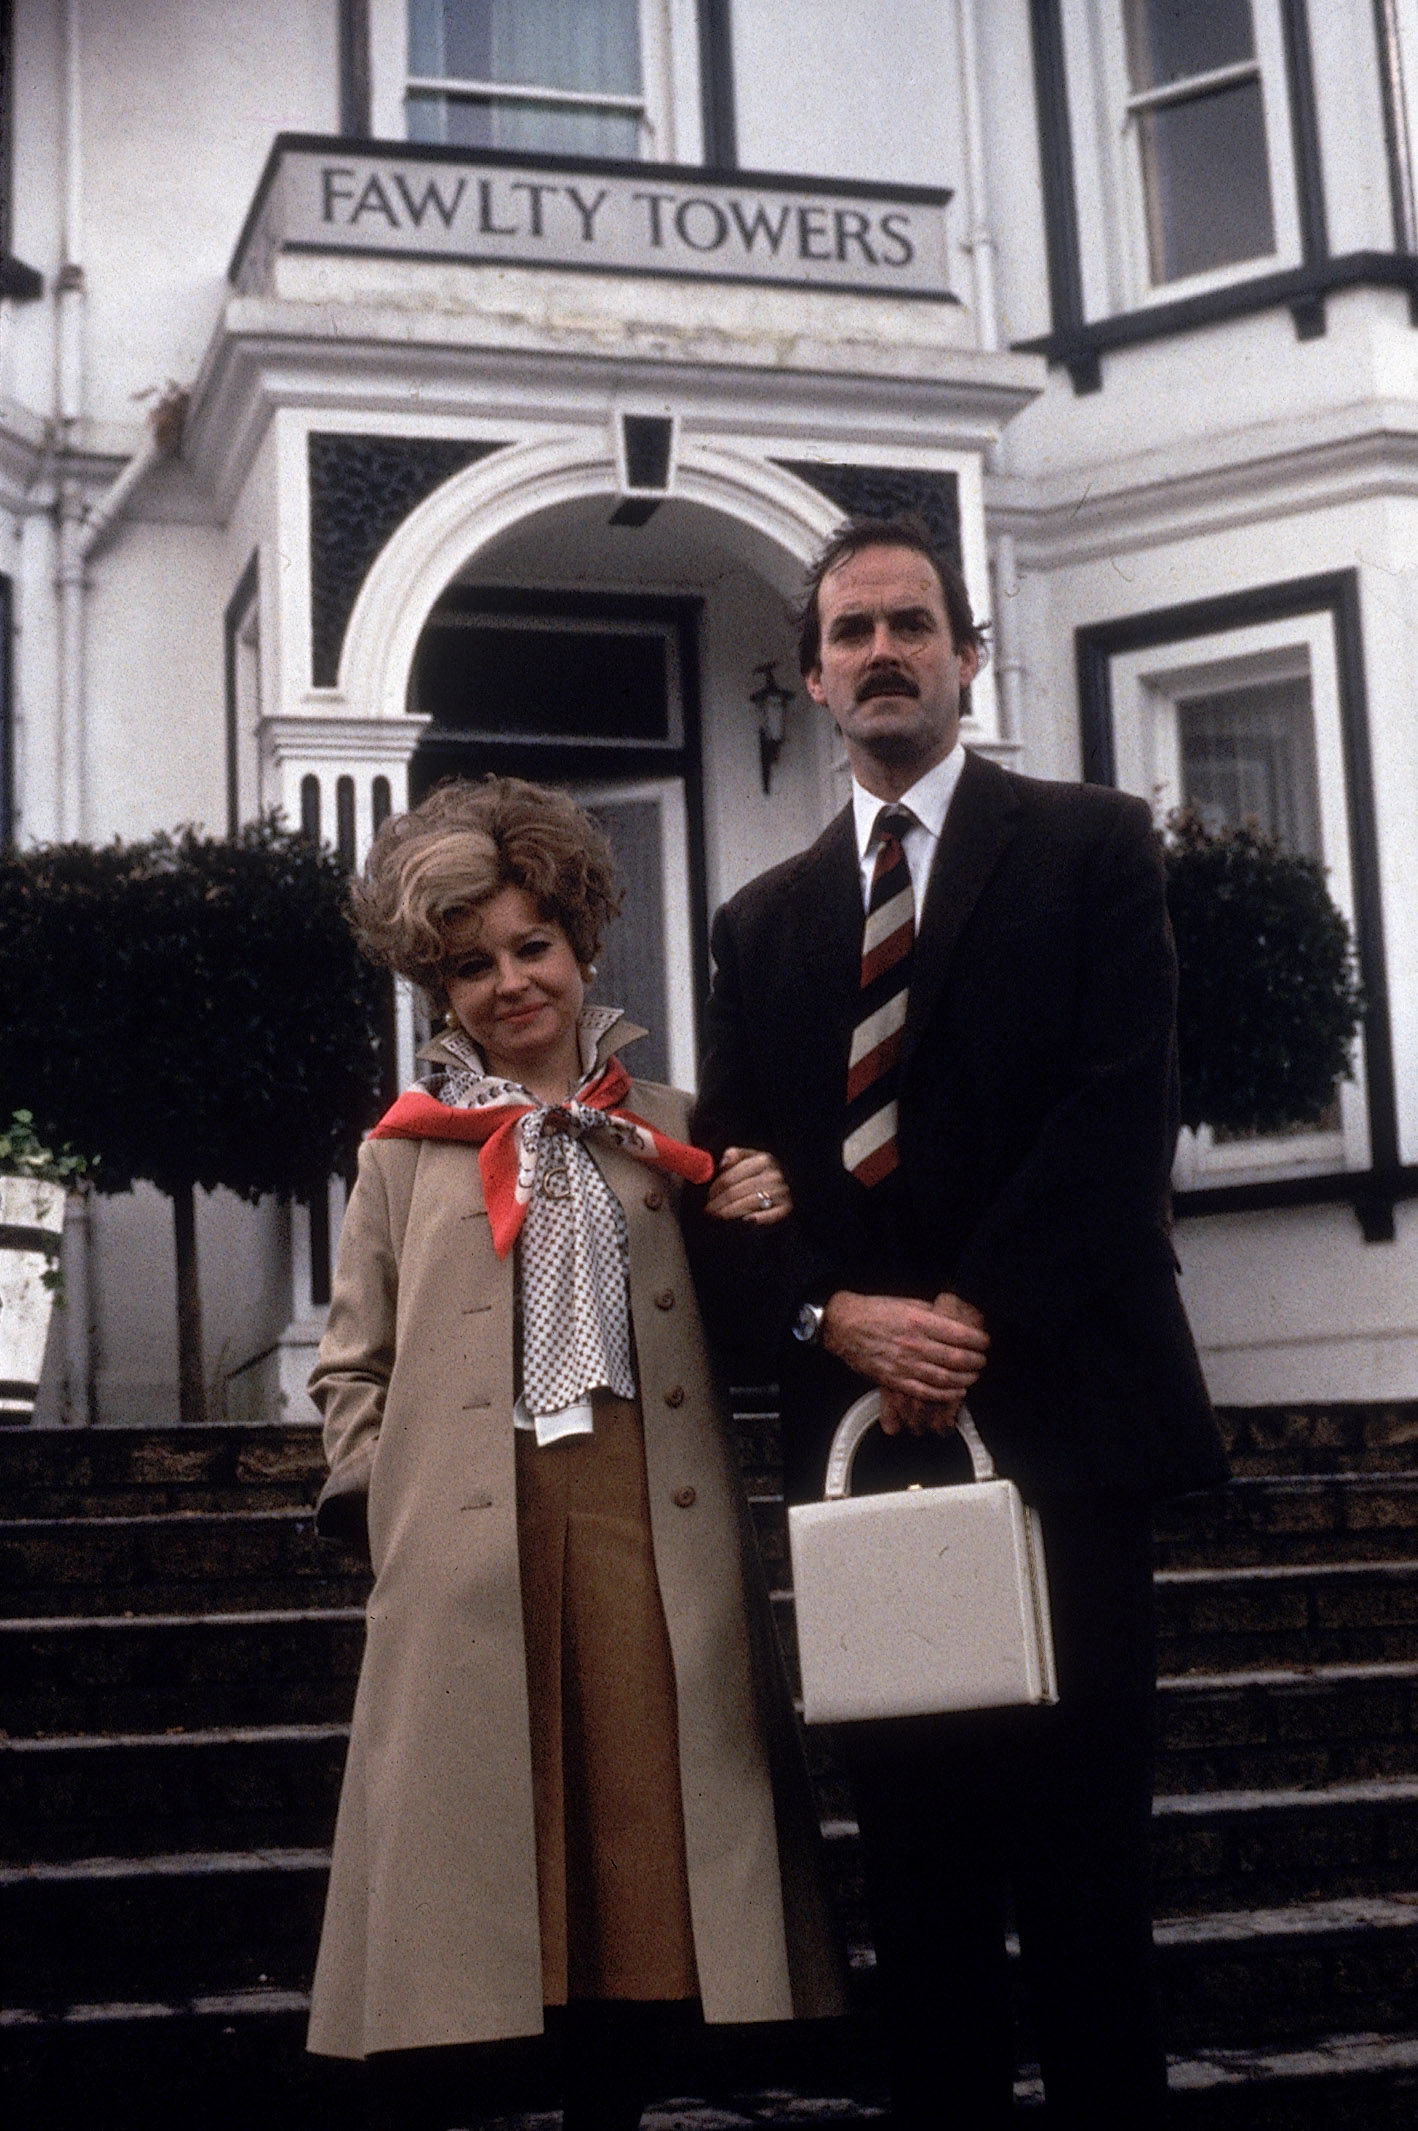 Fawlty Towers tops TV comedy list